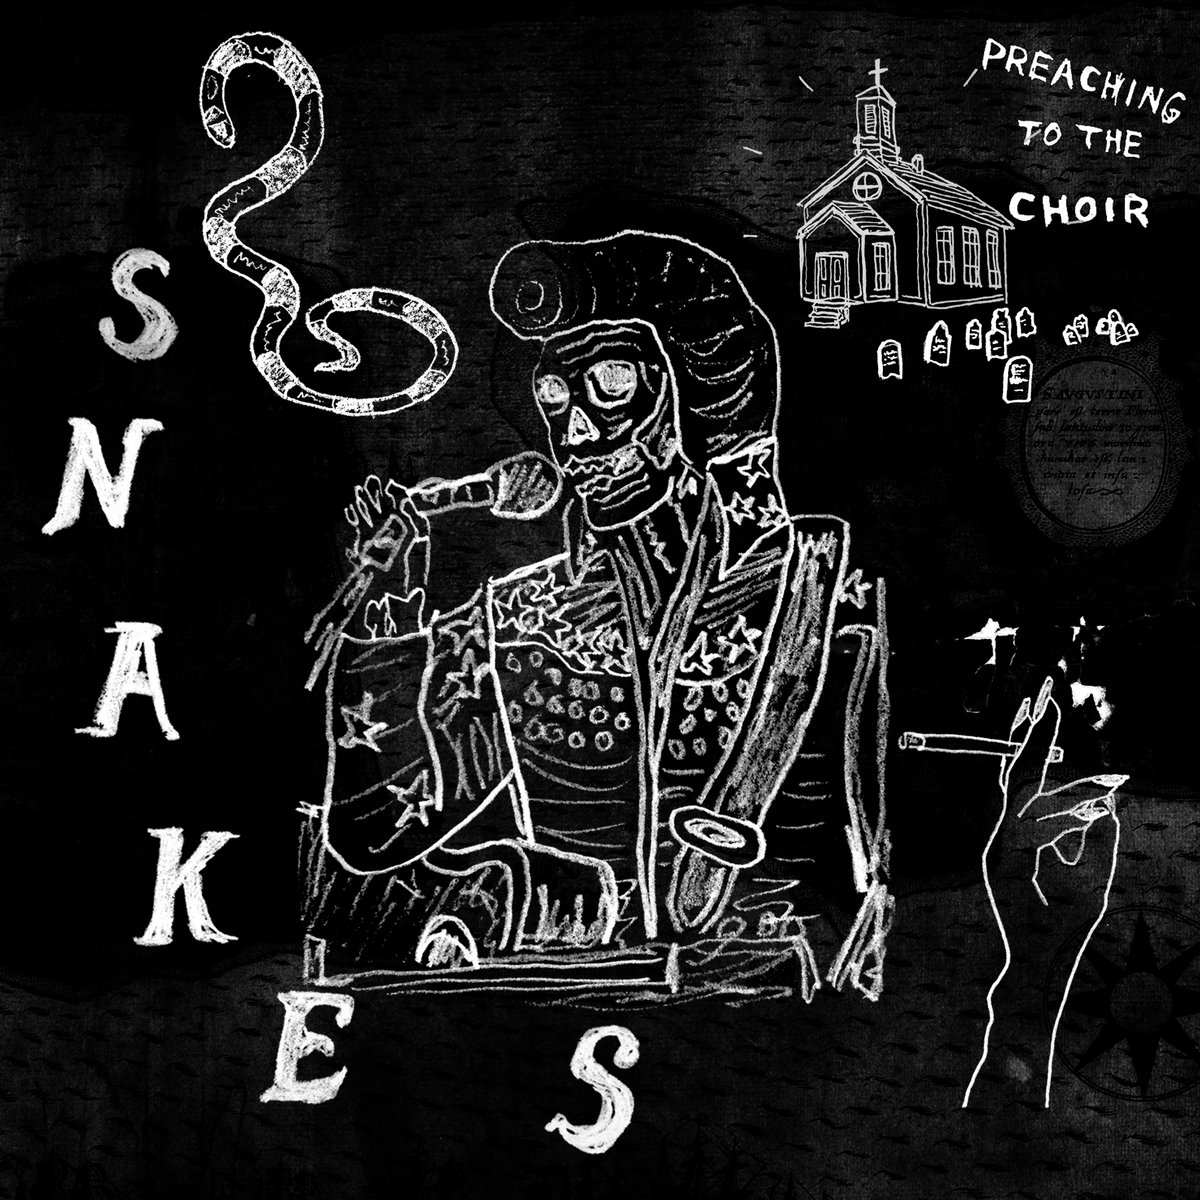 preaching to the choir demo snakes